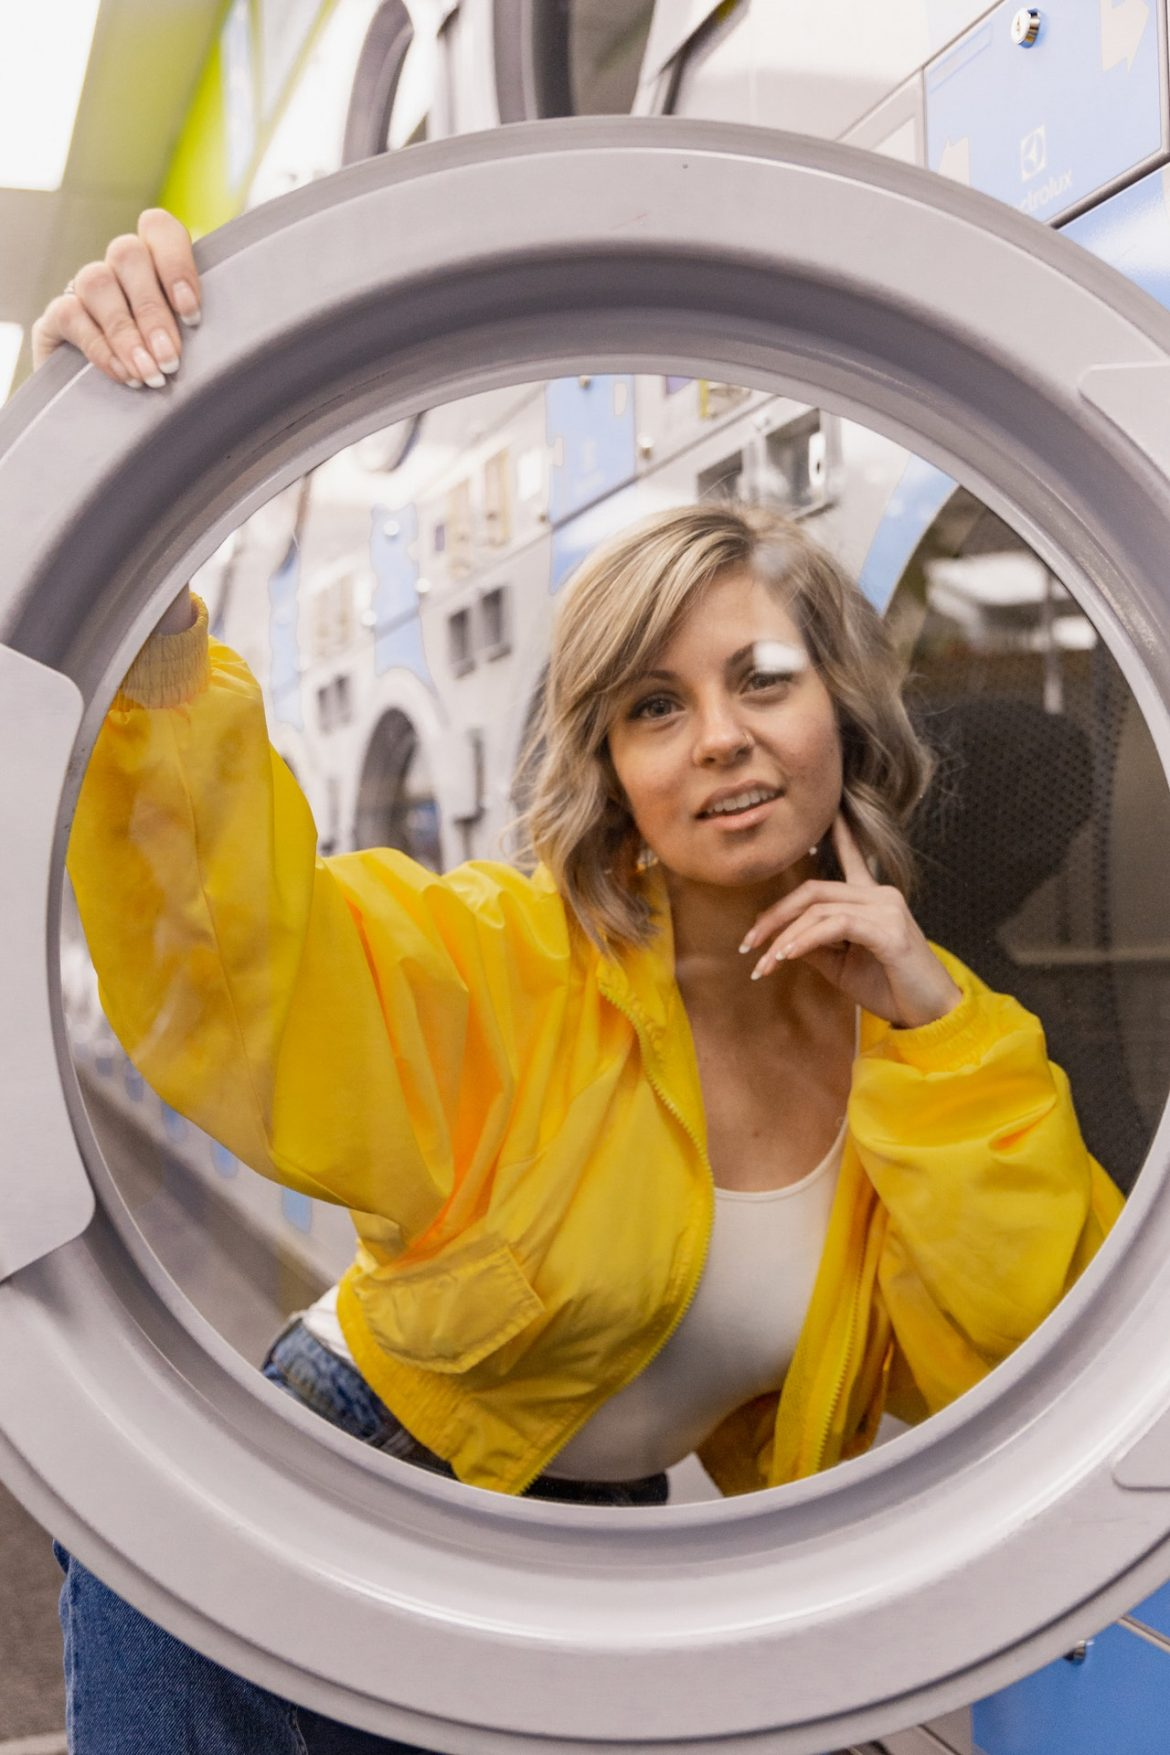 10 Common Washing Machine Problems and Solutions